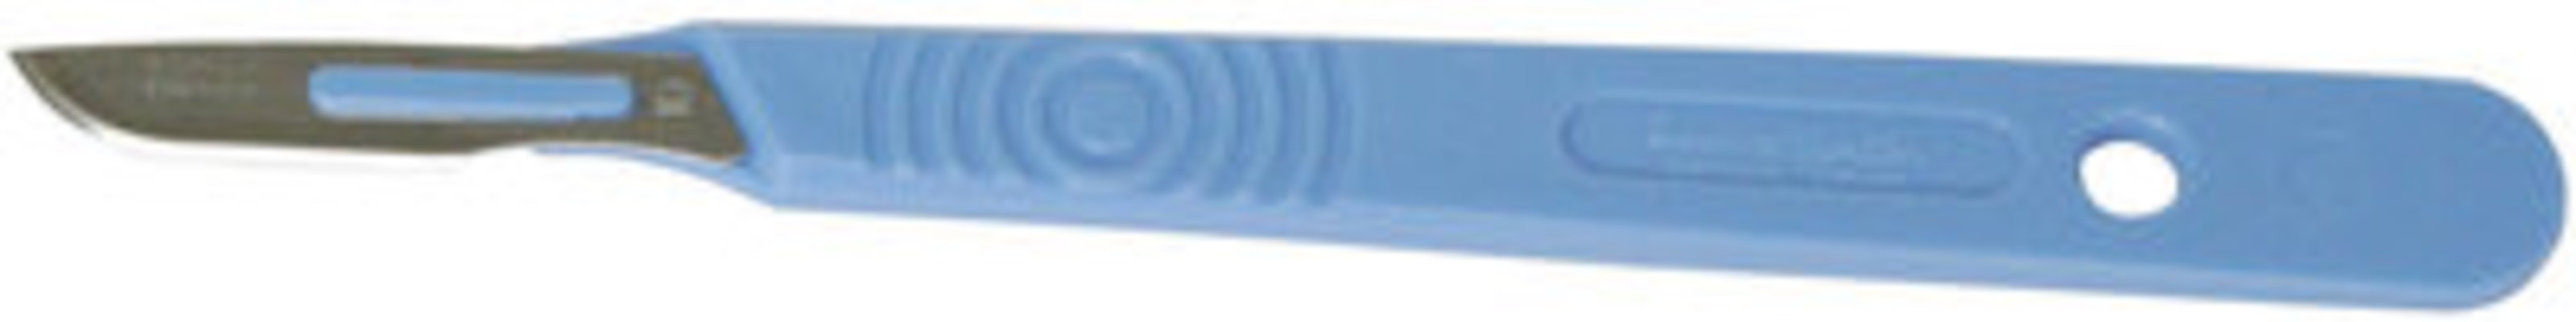 Disposable #10 Scalpels (pack of 10)